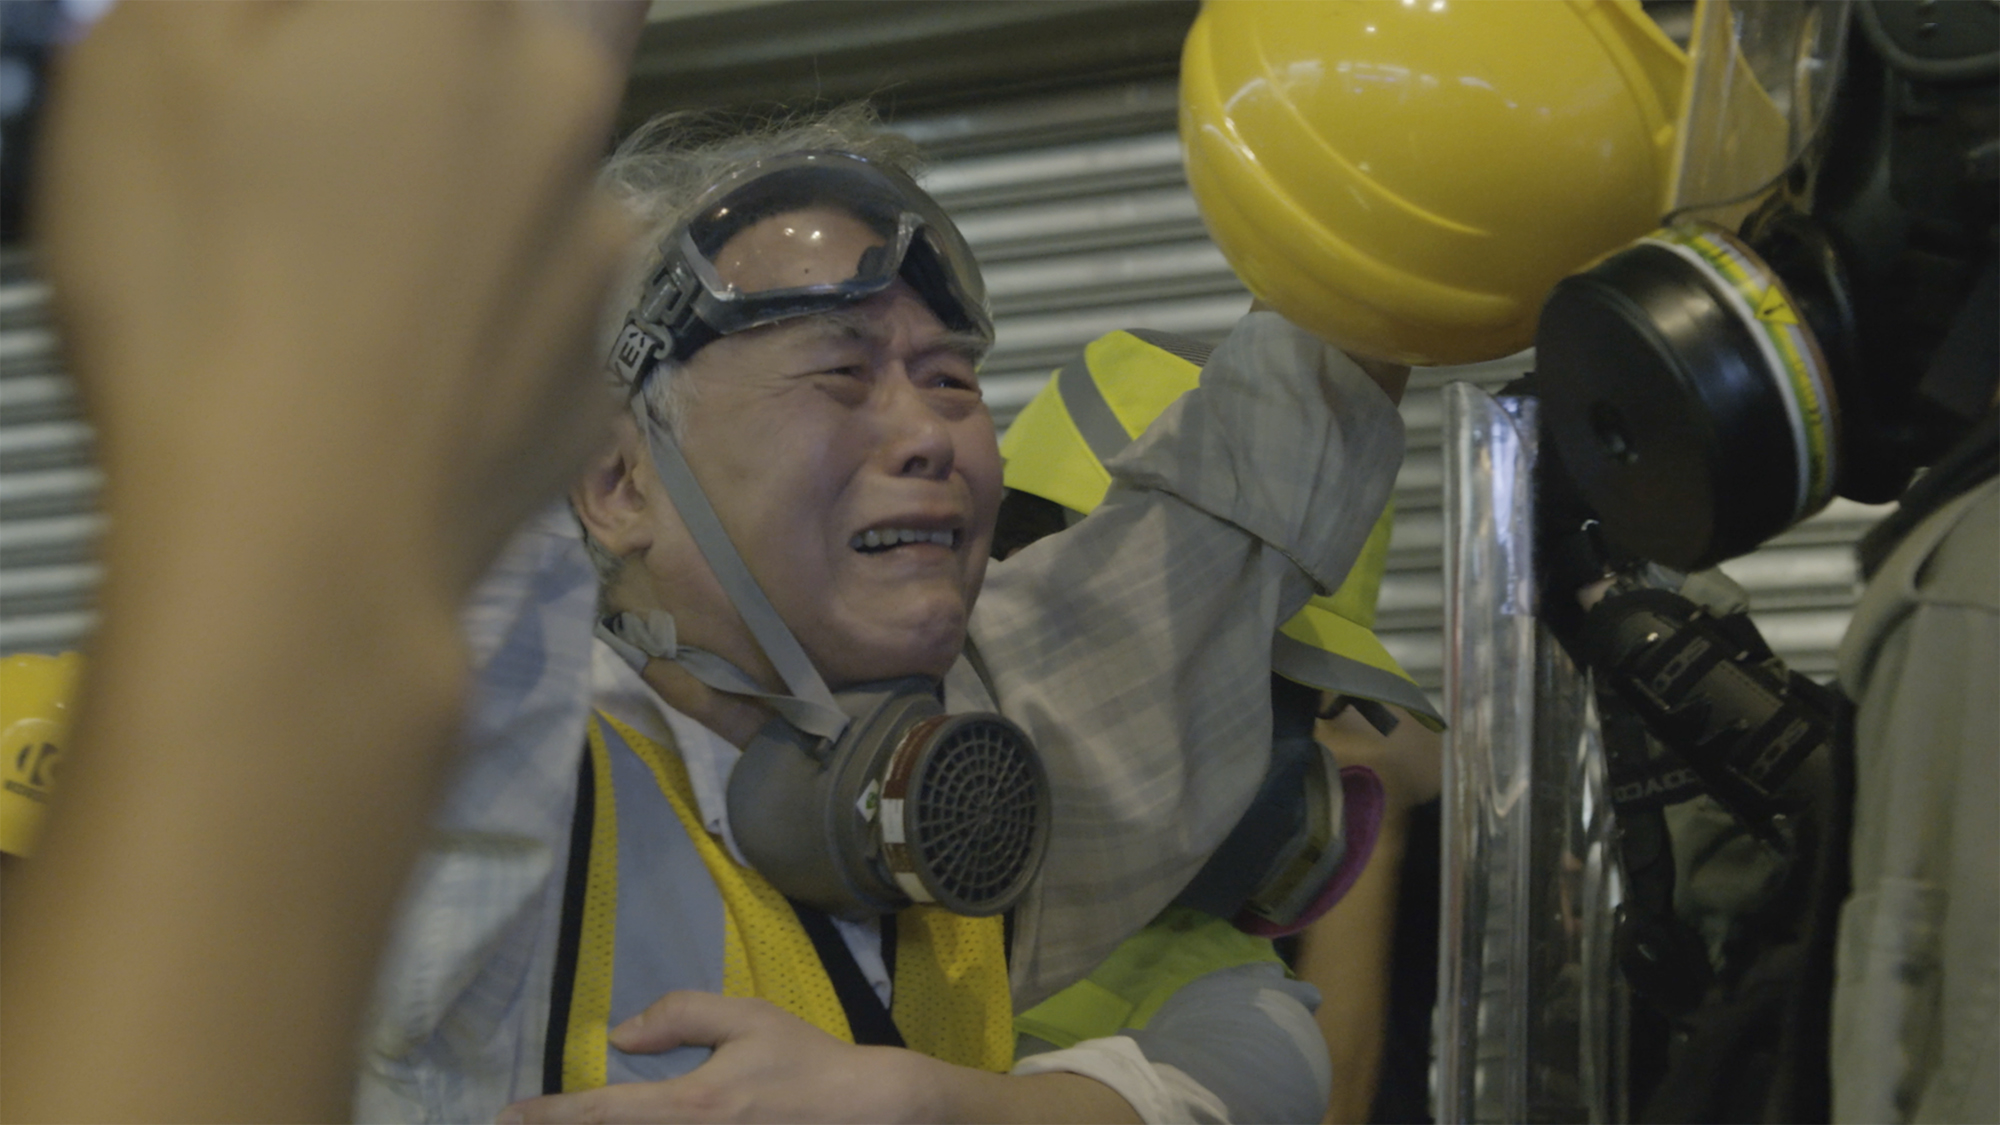 Person wearing protective gear crying